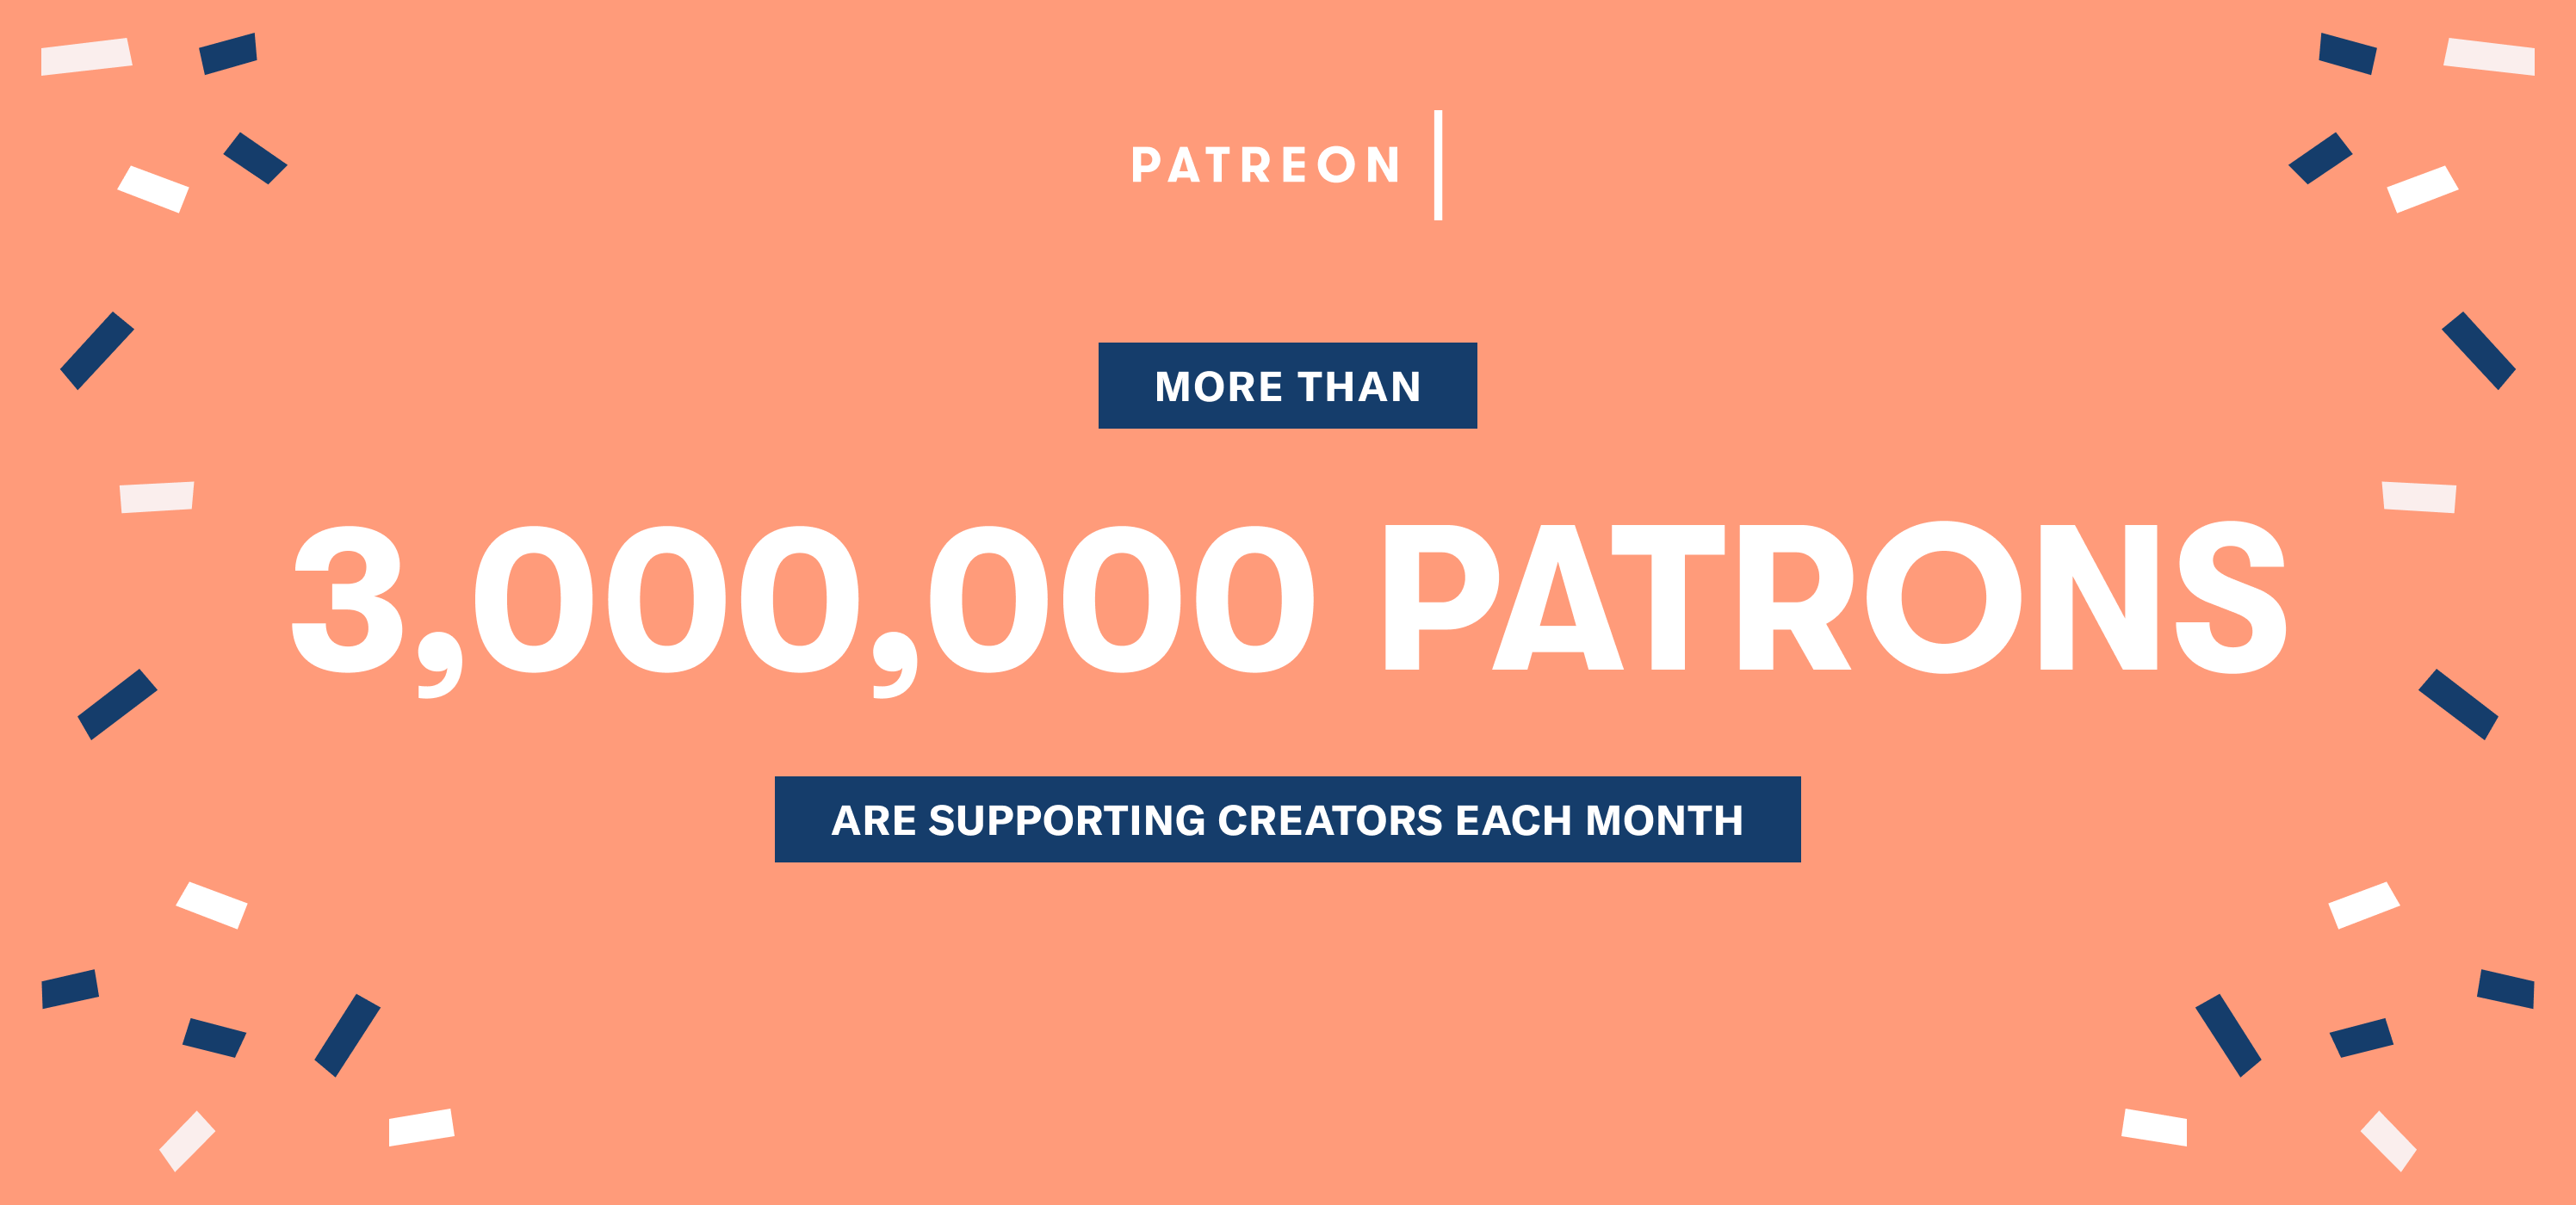 Millions and Billions | Celebrating Patrons, Creators, and Major Milestones